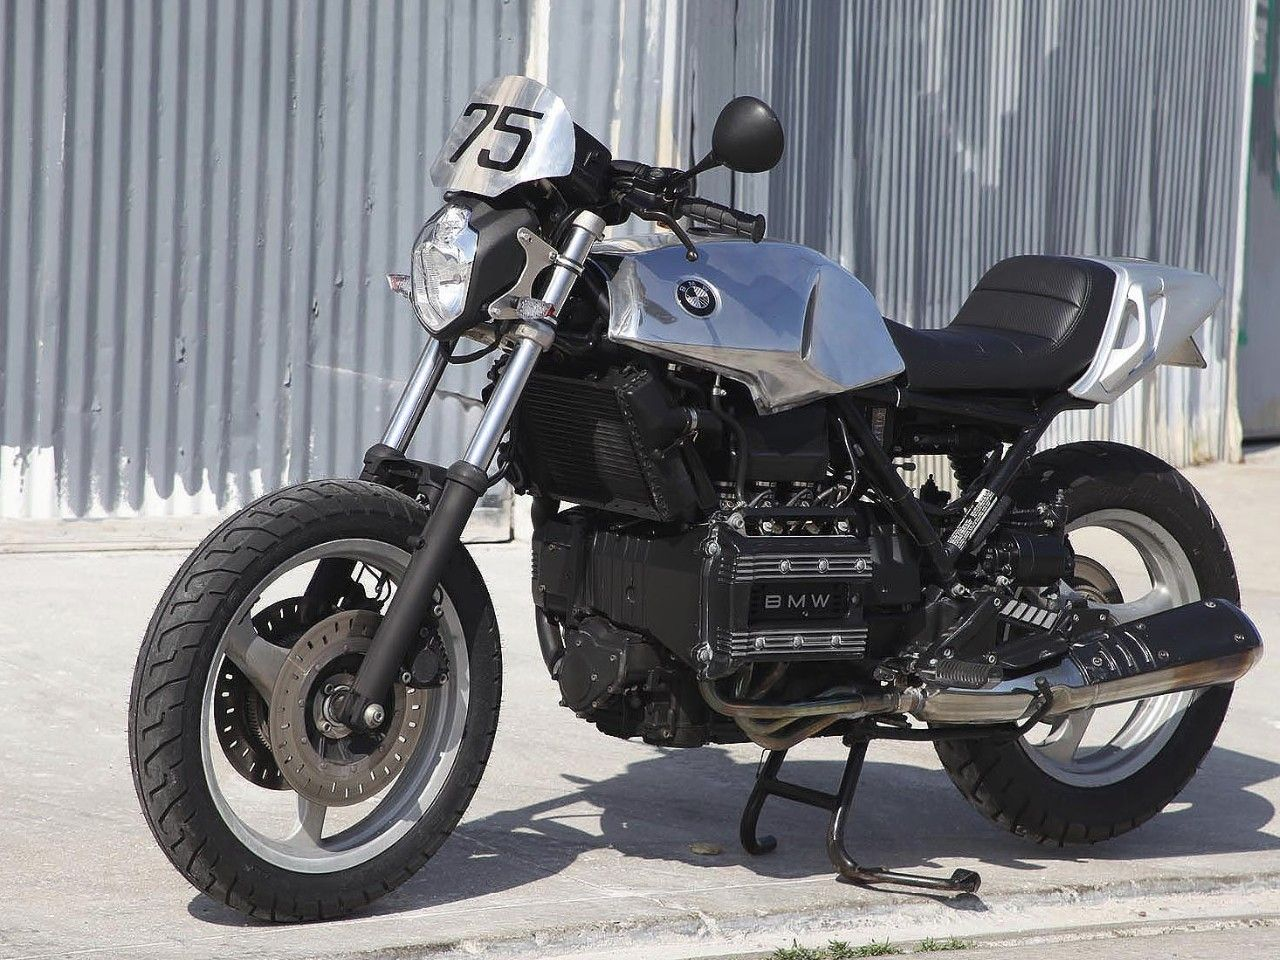 bmw fl for motorcycle nsm fltoday motorcycles sanford from gallery today cars see sportbike florida used sale in